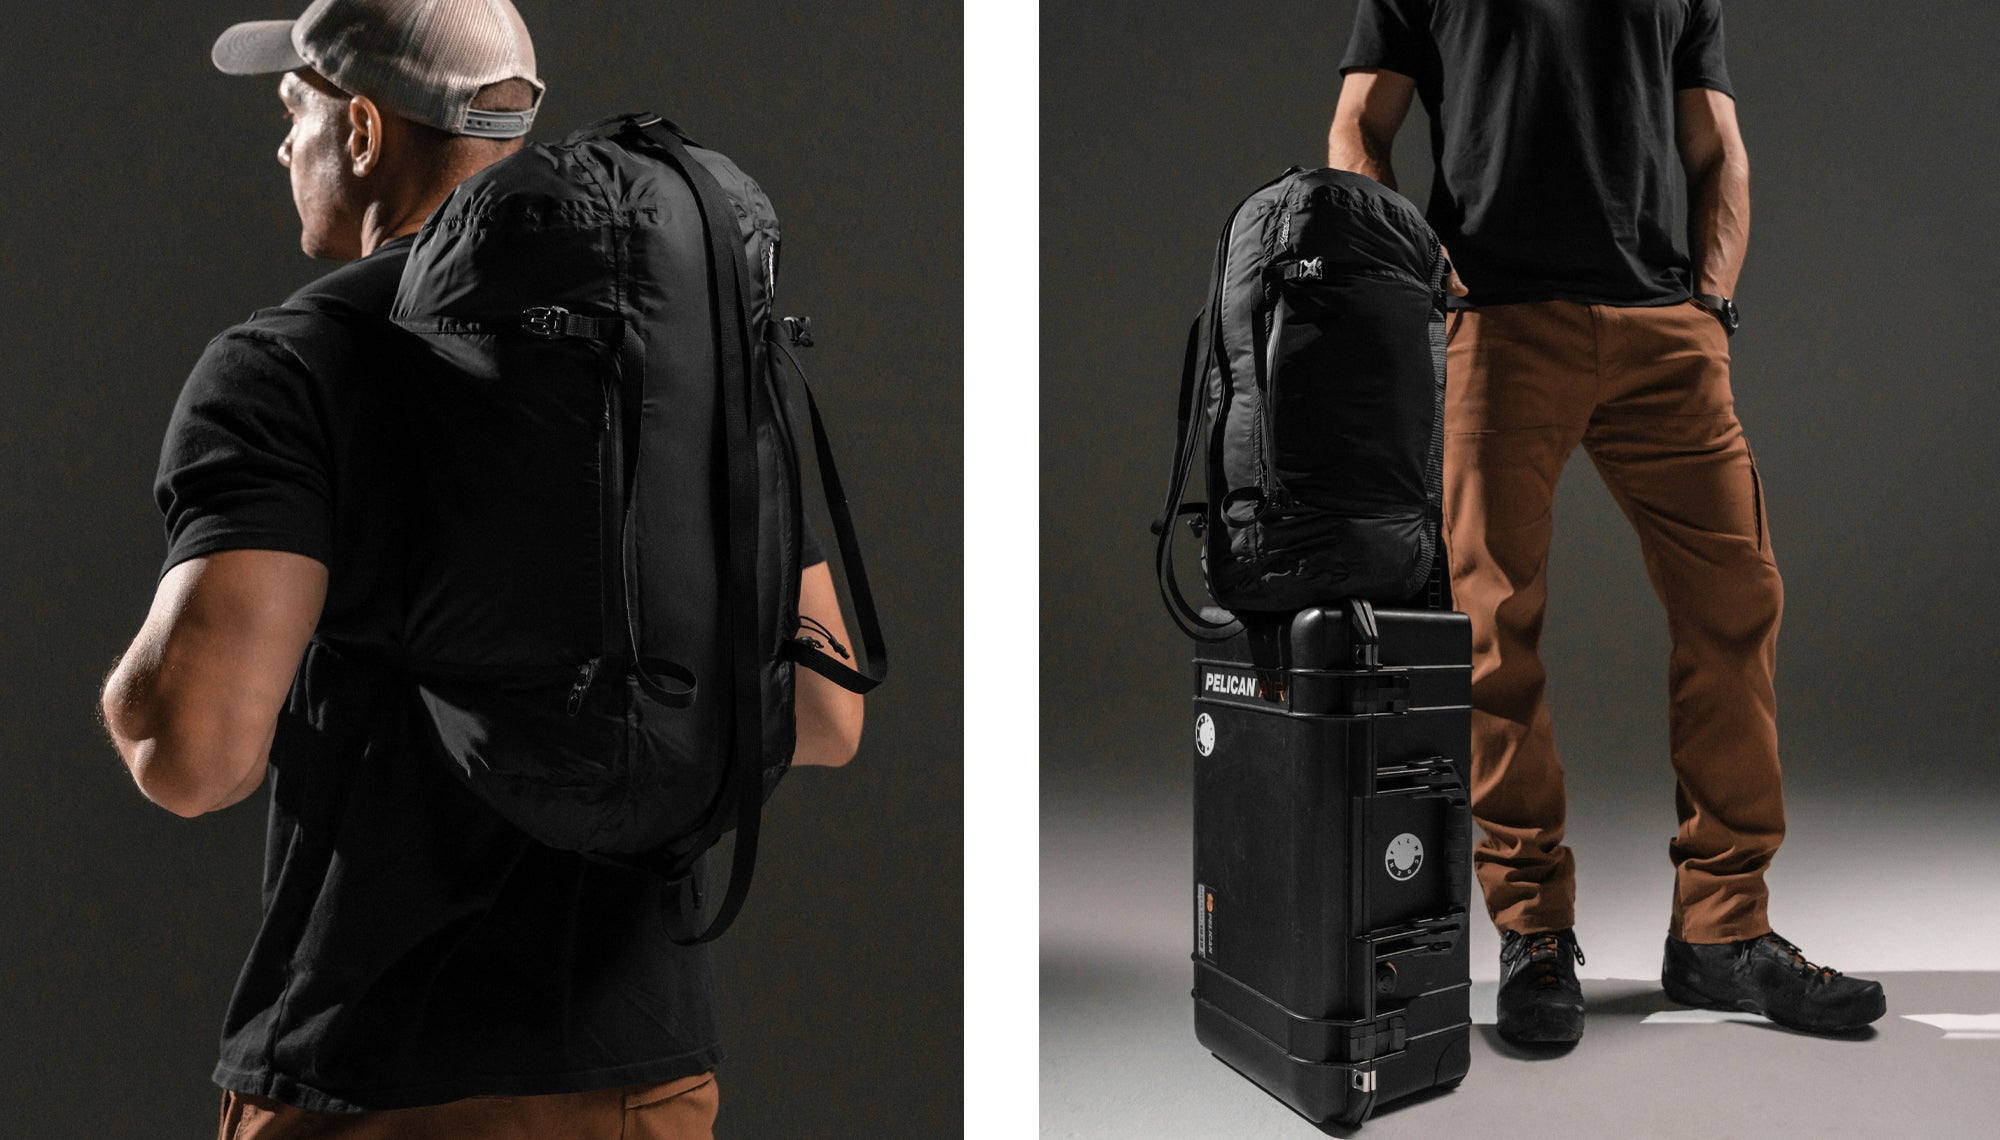 Two images: Man wearing duffle as backpack and man with duffle strapped to suitcase